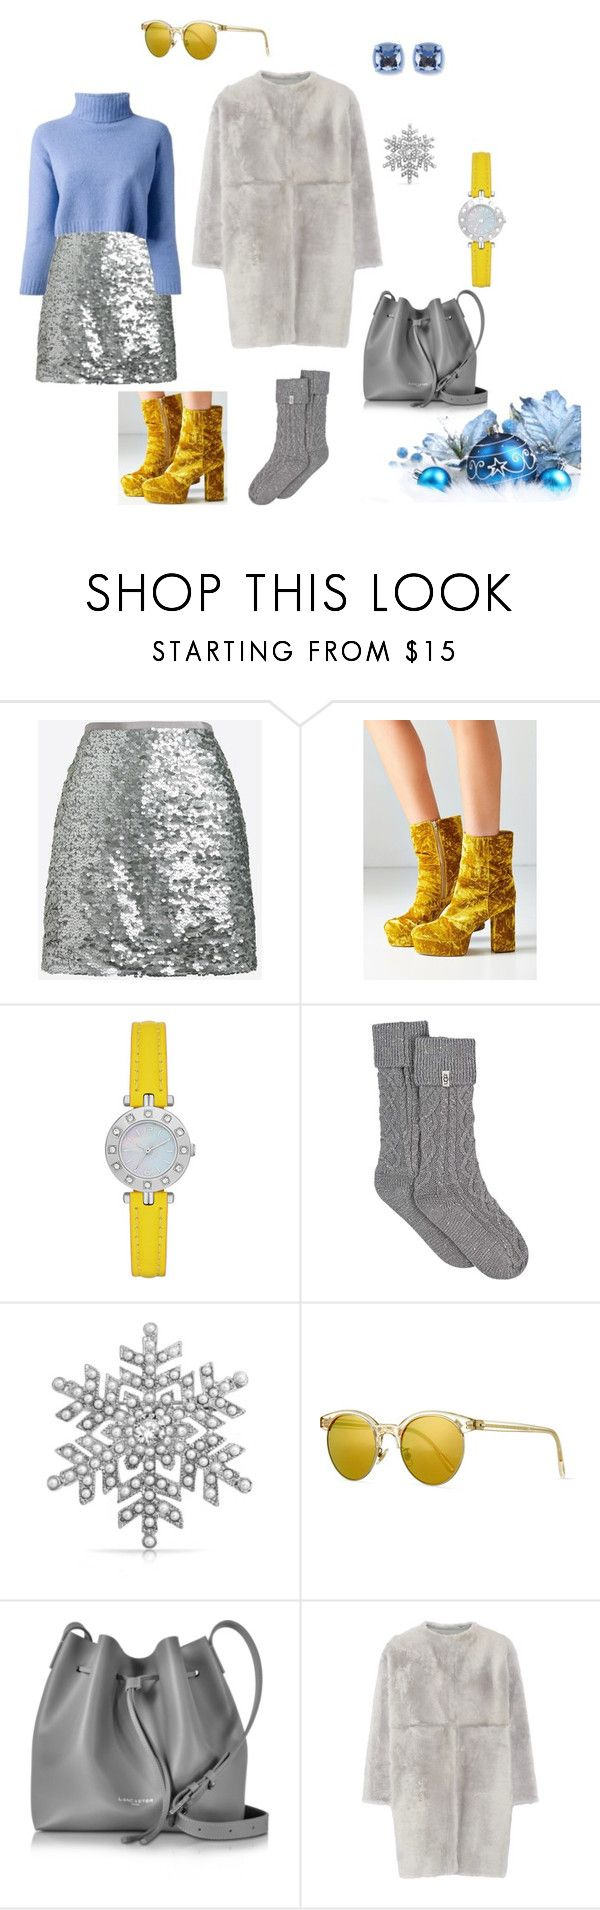 """""""Set 3"""" by natucsya on Polyvore featuring мода, J.Crew, Urban Outfitters, nenette, UGG, Bling Jewelry, Oliver Peoples, Lancaster и Karl Donoghue"""